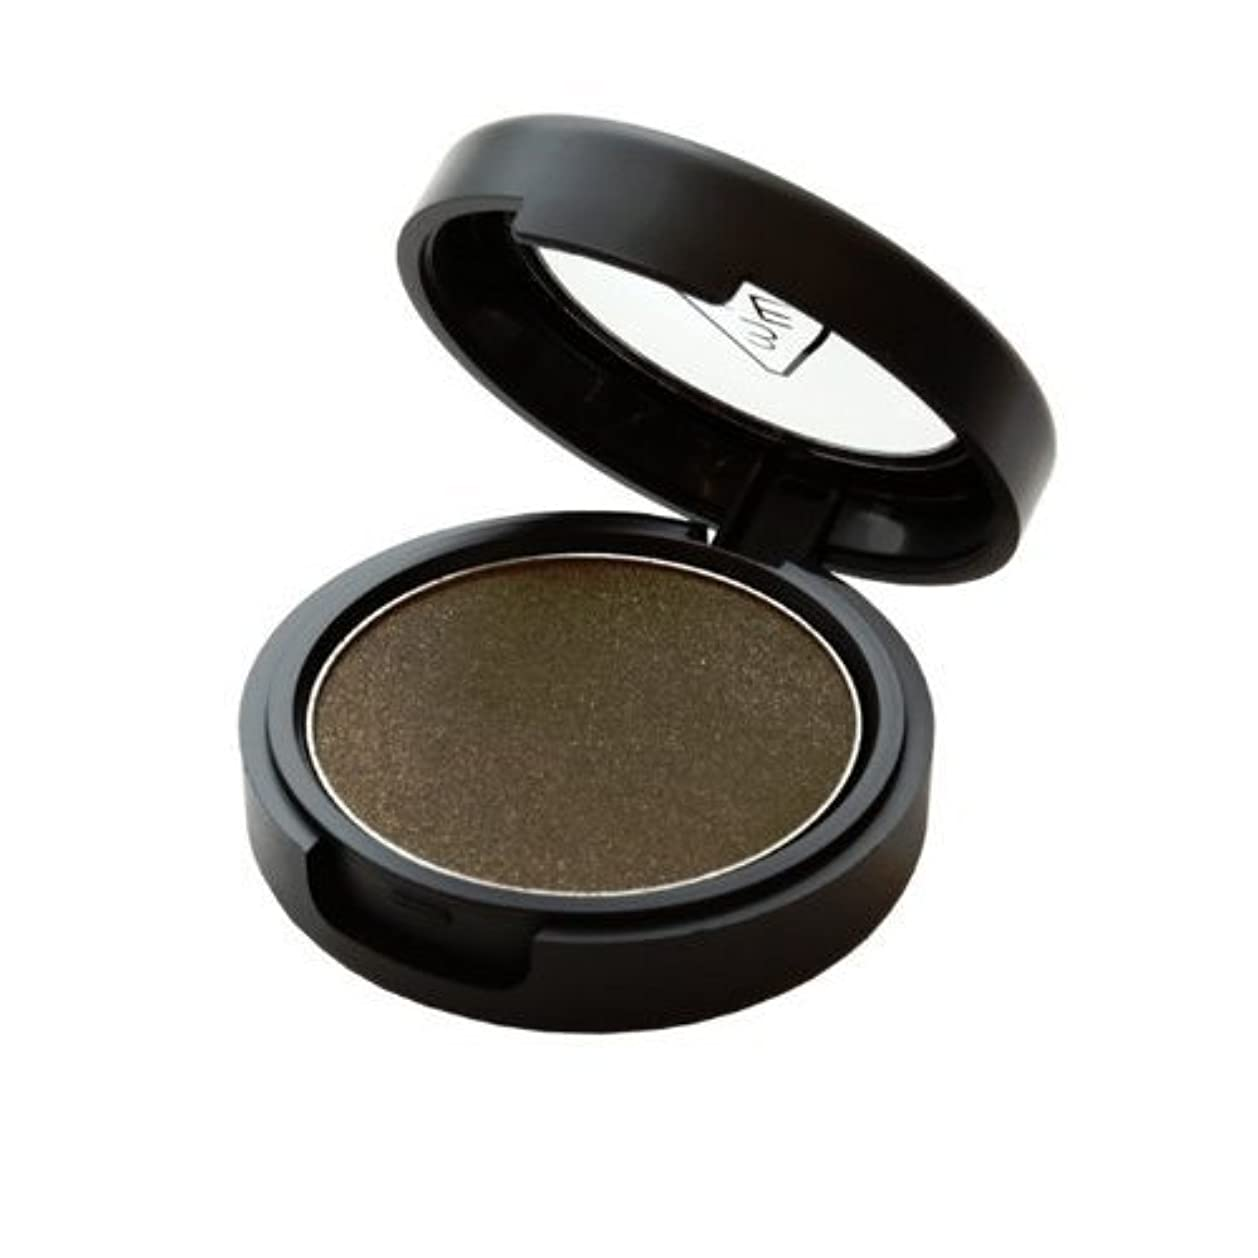 素晴らしい良い多くの敏感な迷彩Style NANDA 3 CONCEPT EYES, ONE COLOR SHADOW (SHIMMER.T) # COWBOY (3.5g, stylish bronze khaki)